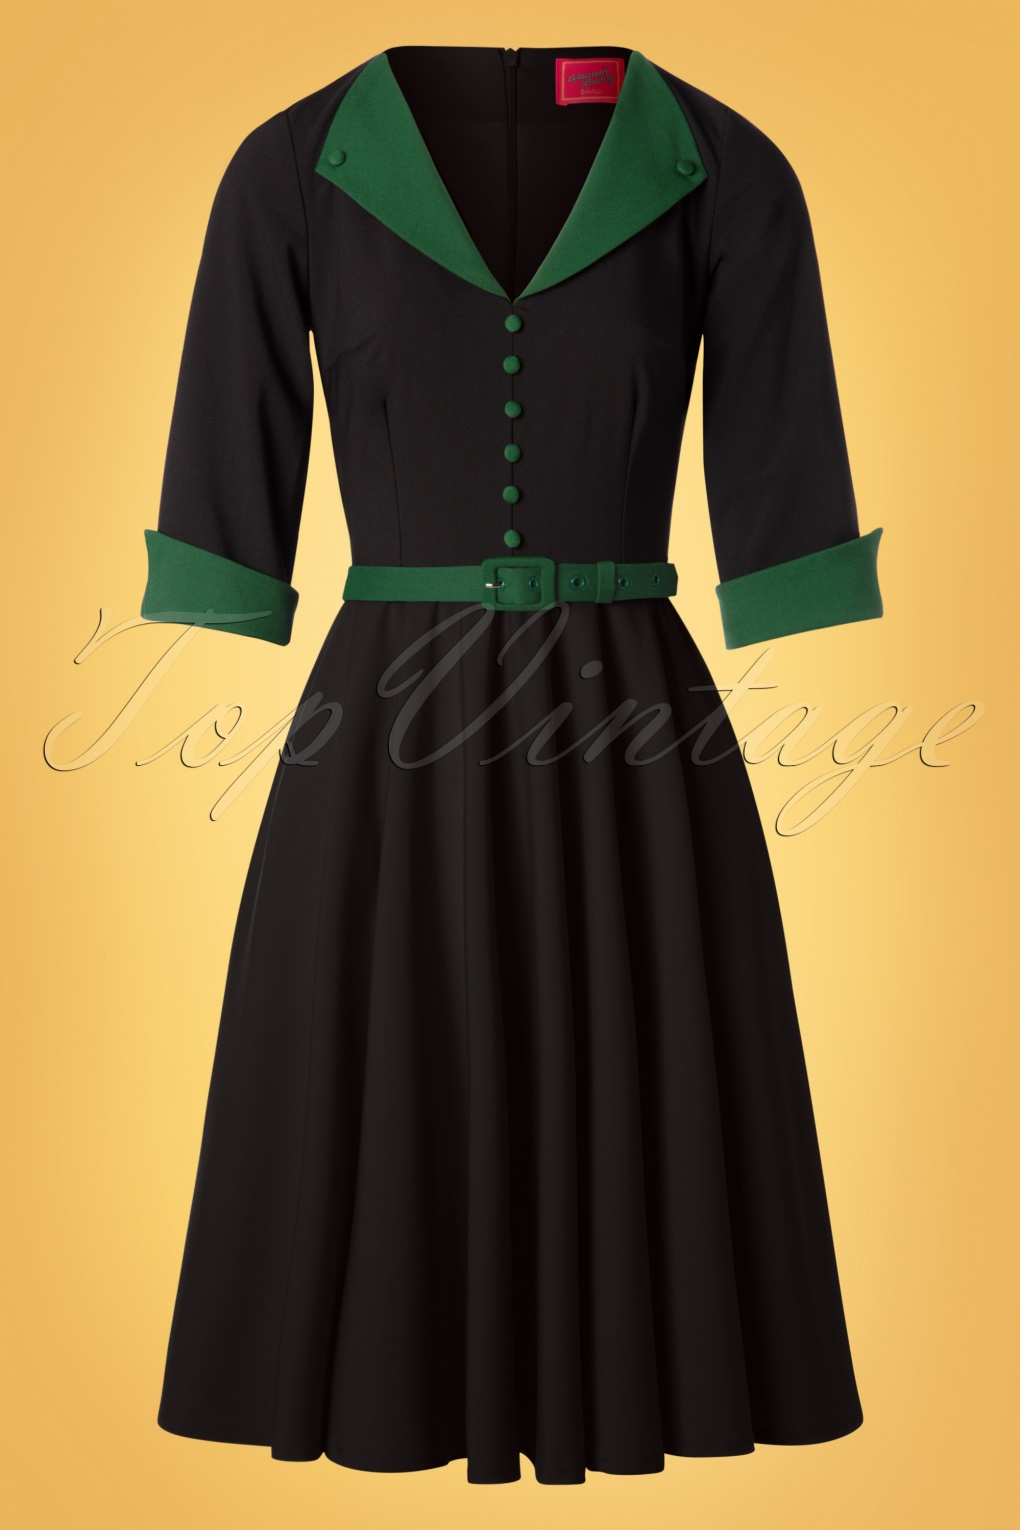 Pin Up Dresses | Pinup Clothing & Fashion 50s Sarai Swing Dress in Black and Green £106.92 AT vintagedancer.com